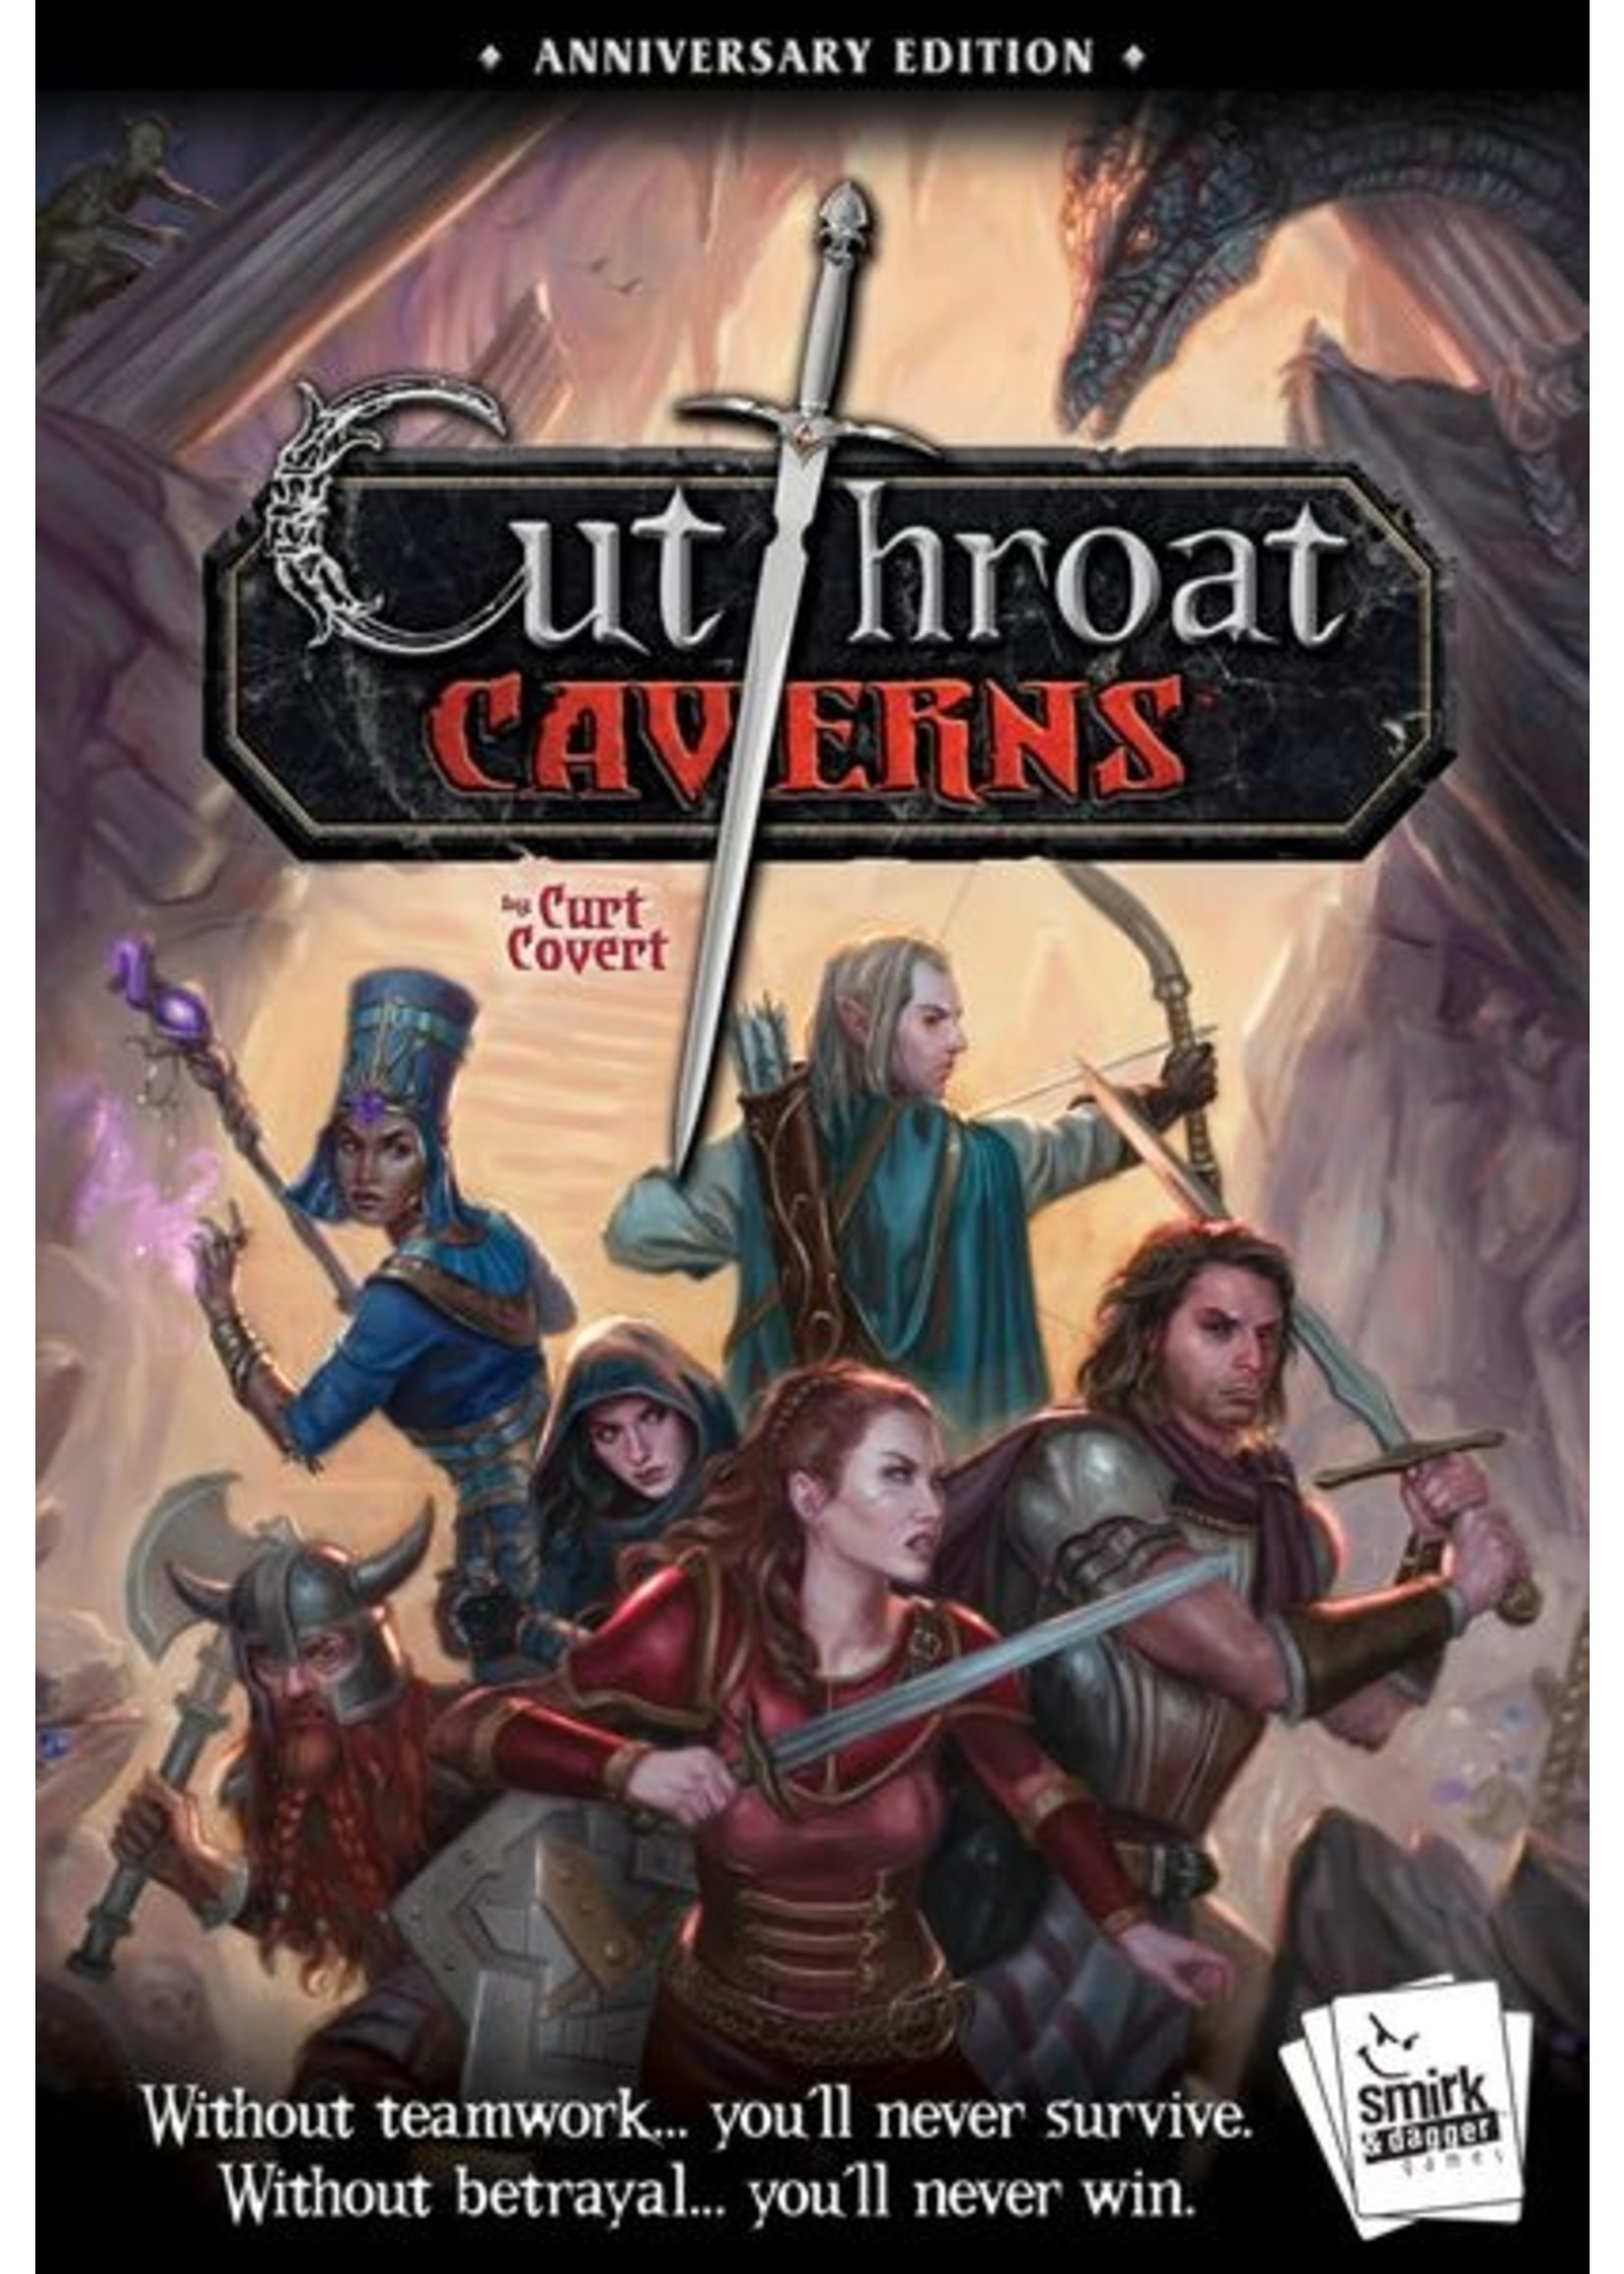 Cutthroat Caverns: Anniversary Edition